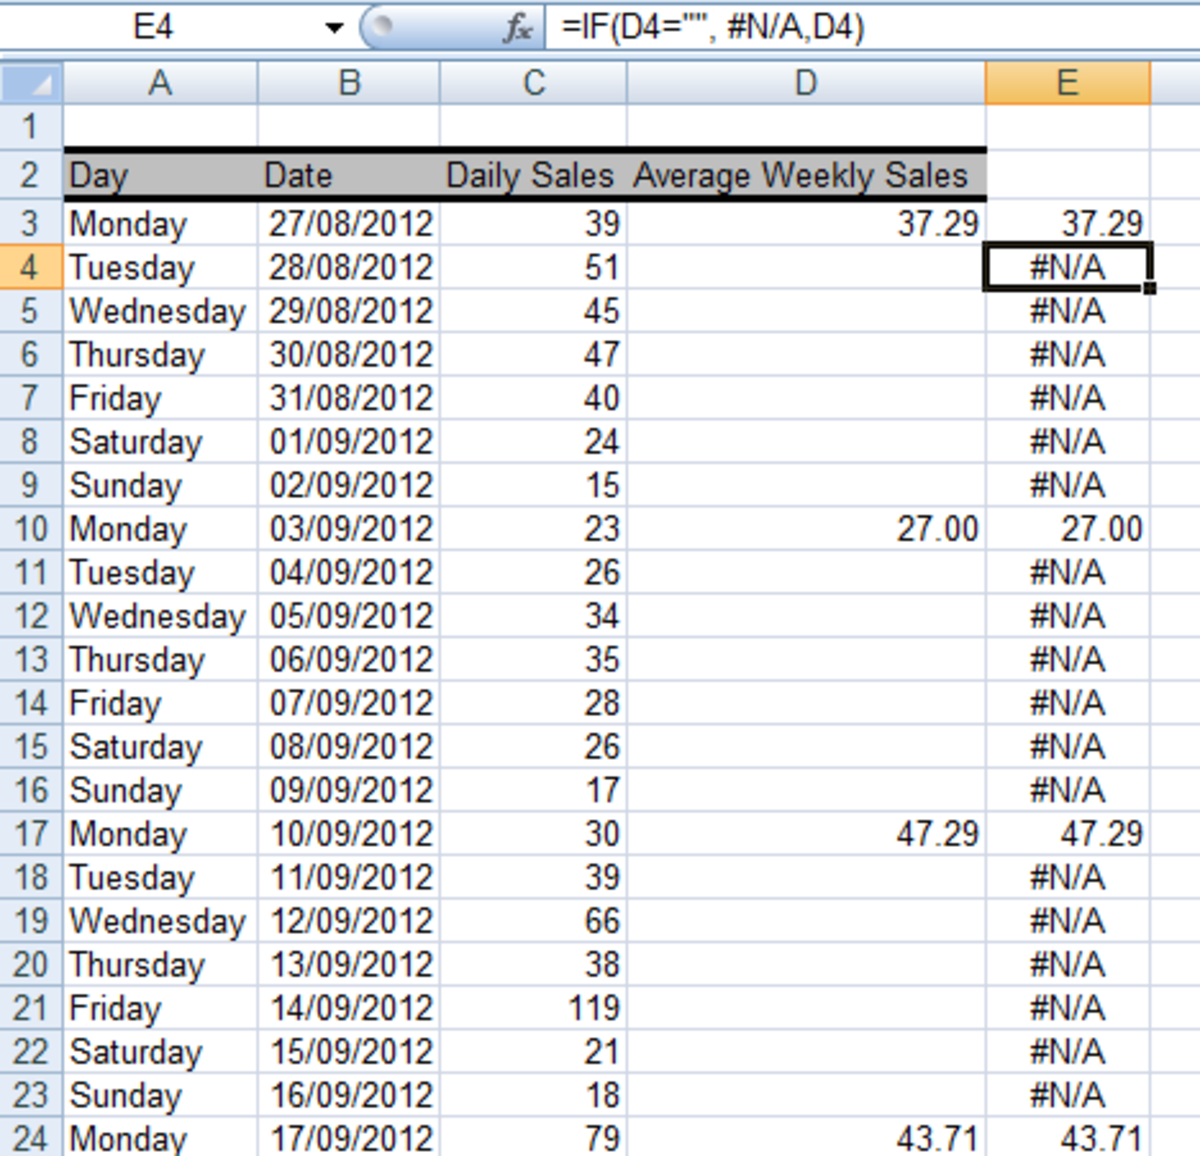 Ediblewildsus  Pretty How To Get Excel  And  To Ignore Empty Cells In A Chart Or  With Goodlooking Using The If Function In A Formula To Convert Empty Cells To Na With Alluring Split Text In Excel Cell Also Select A Range In Excel In Addition Extract Numbers From Text In Excel And Convert Webpage To Excel As Well As How Do I Separate Information In An Excel Cell Additionally Excel Label Maker From Turbofuturecom With Ediblewildsus  Goodlooking How To Get Excel  And  To Ignore Empty Cells In A Chart Or  With Alluring Using The If Function In A Formula To Convert Empty Cells To Na And Pretty Split Text In Excel Cell Also Select A Range In Excel In Addition Extract Numbers From Text In Excel From Turbofuturecom